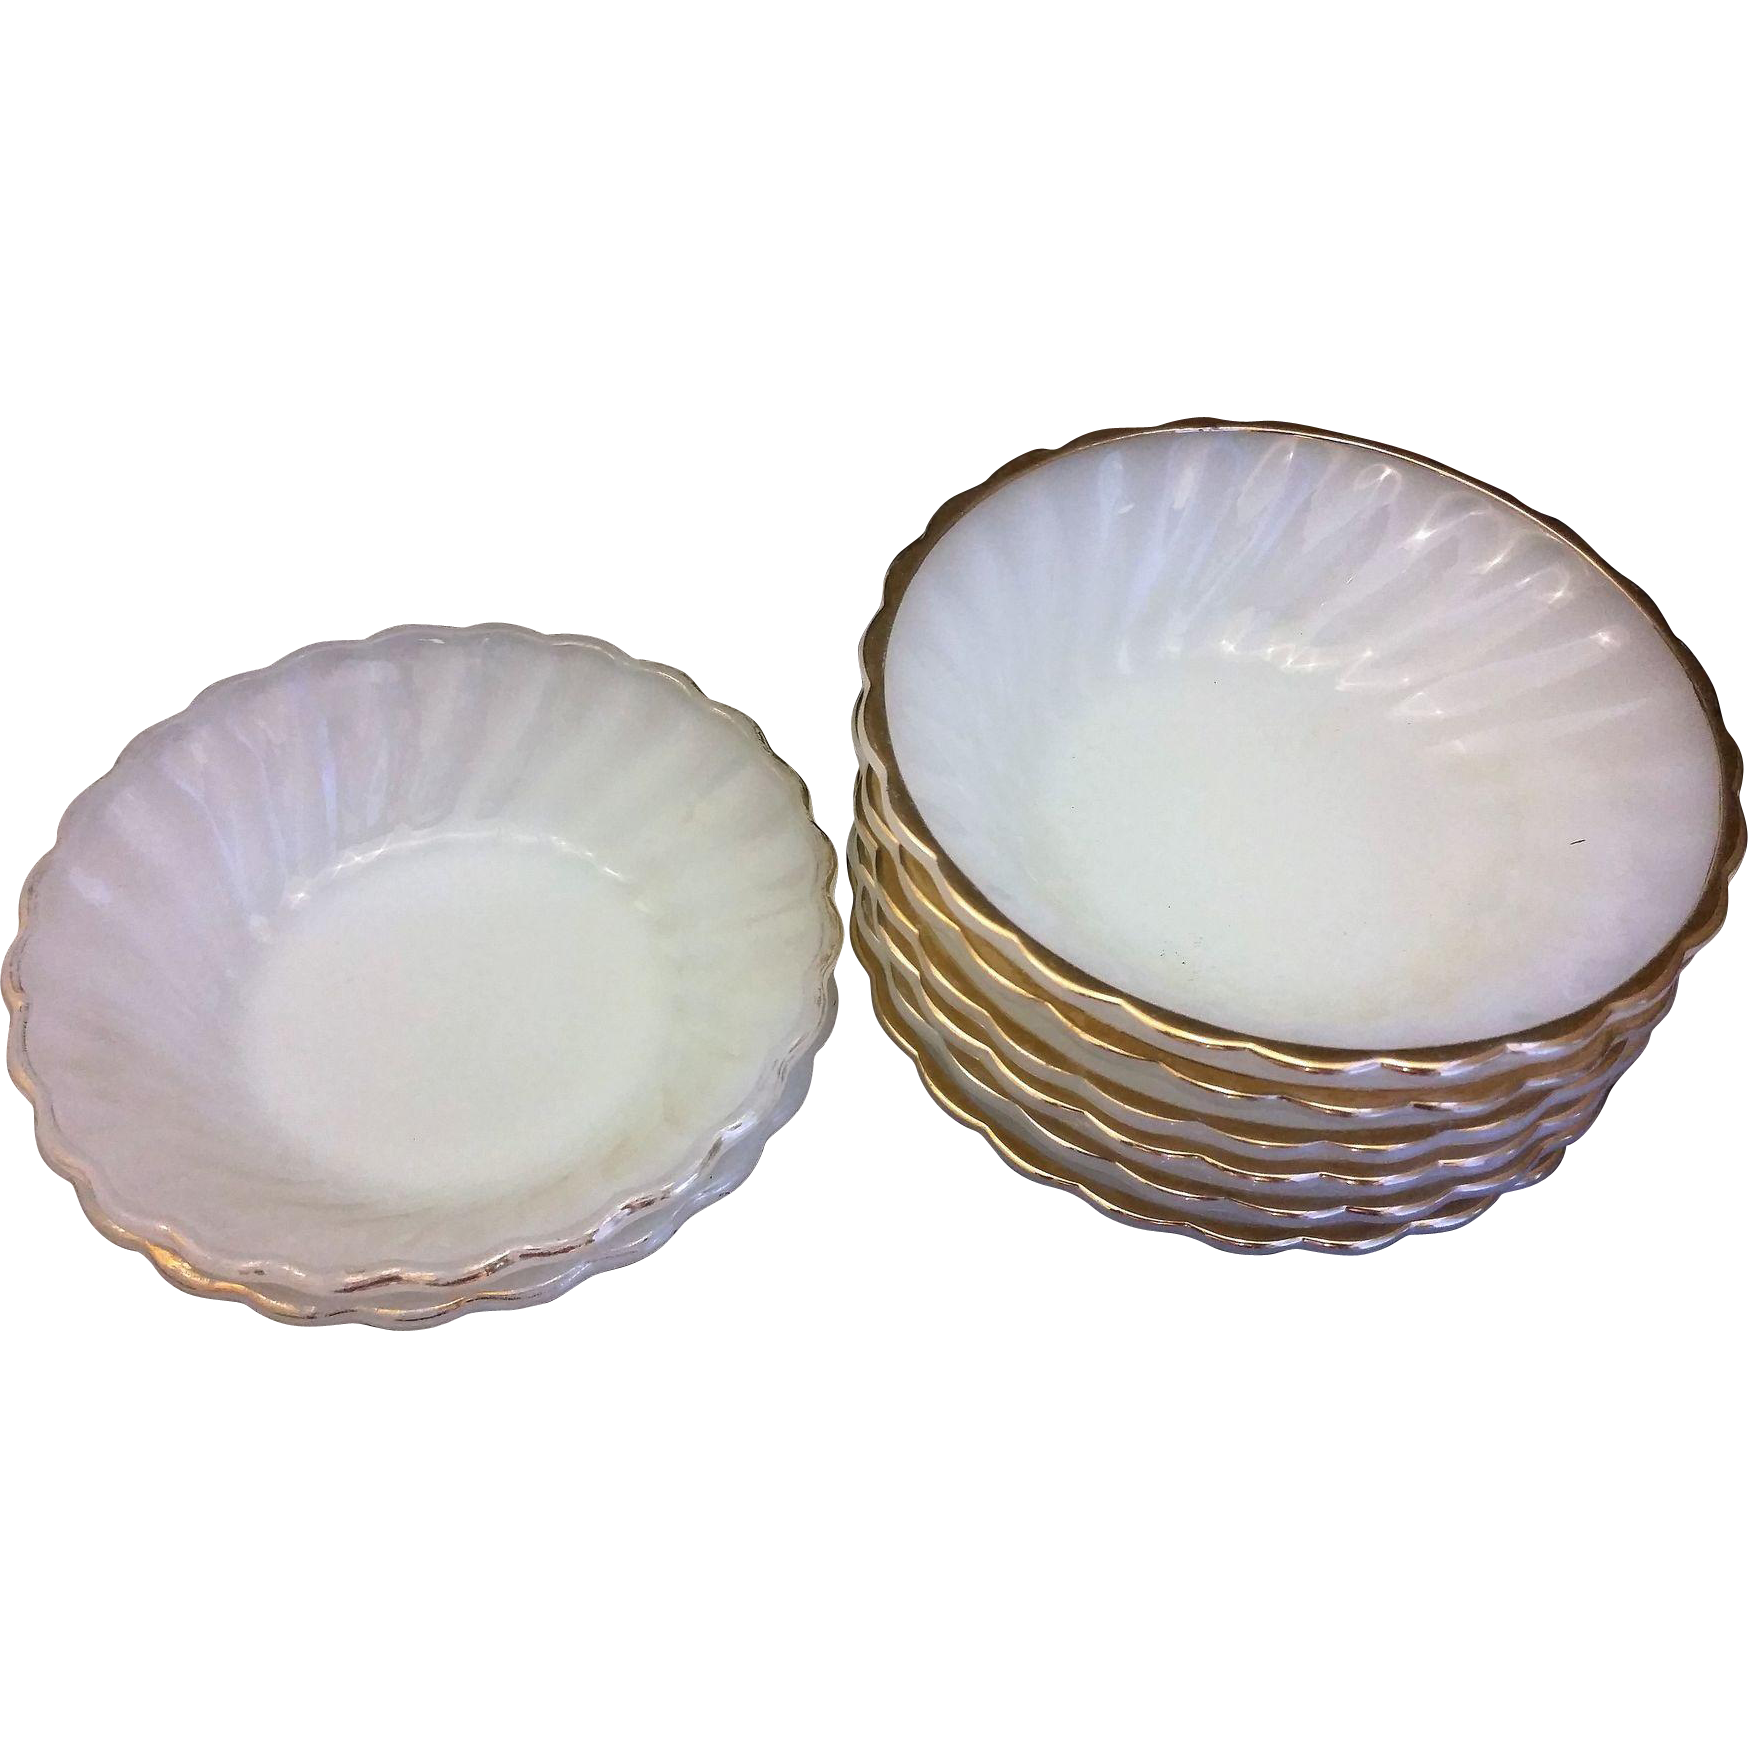 Golden Shell Milk Glass Anchor Hocking Fire King Dessert Bowls Set of 8